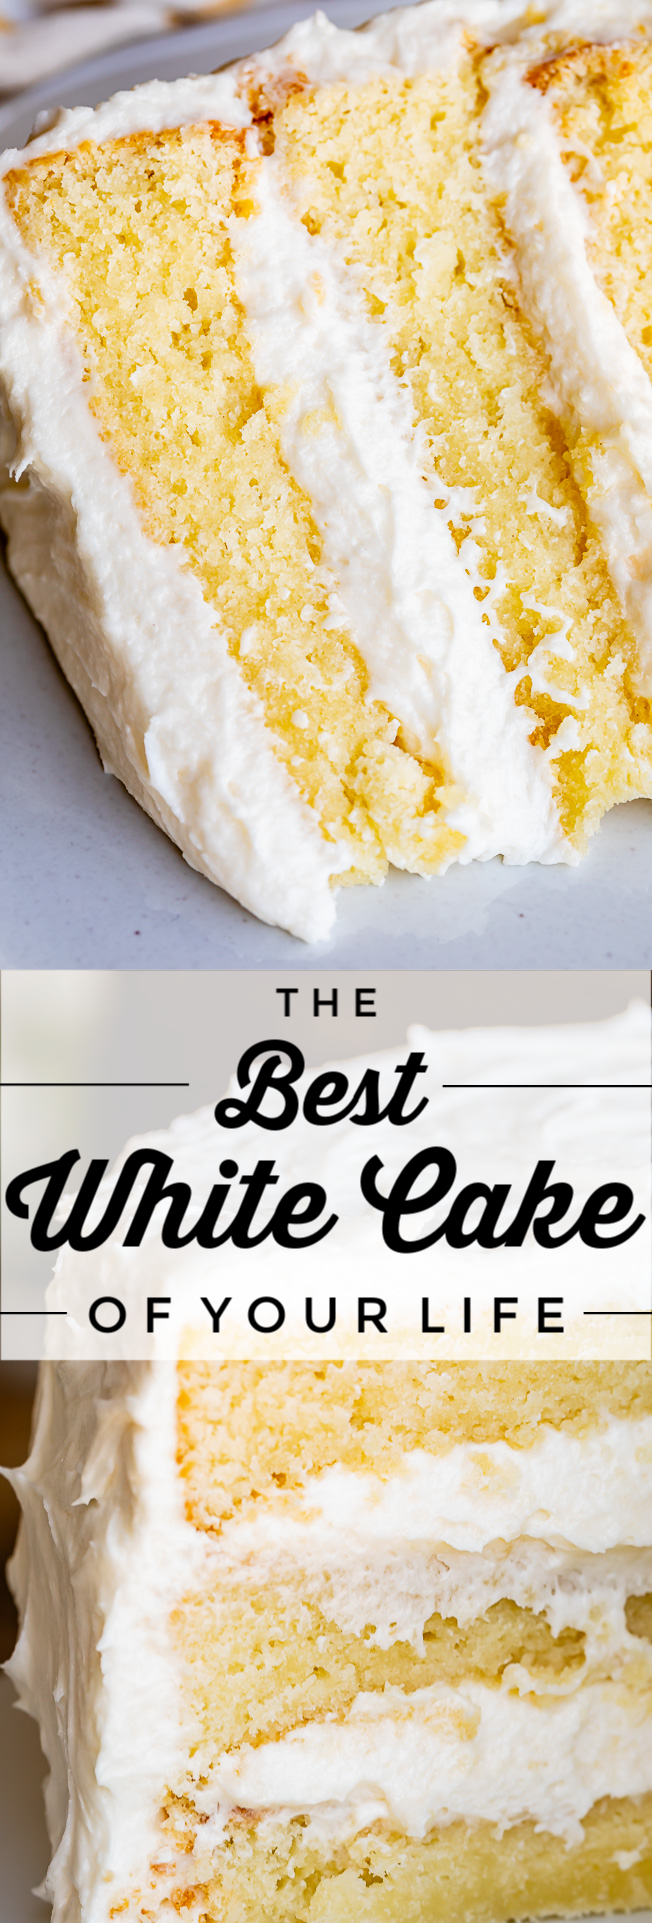 The Best Homemade White Cake Recipe of Your Life